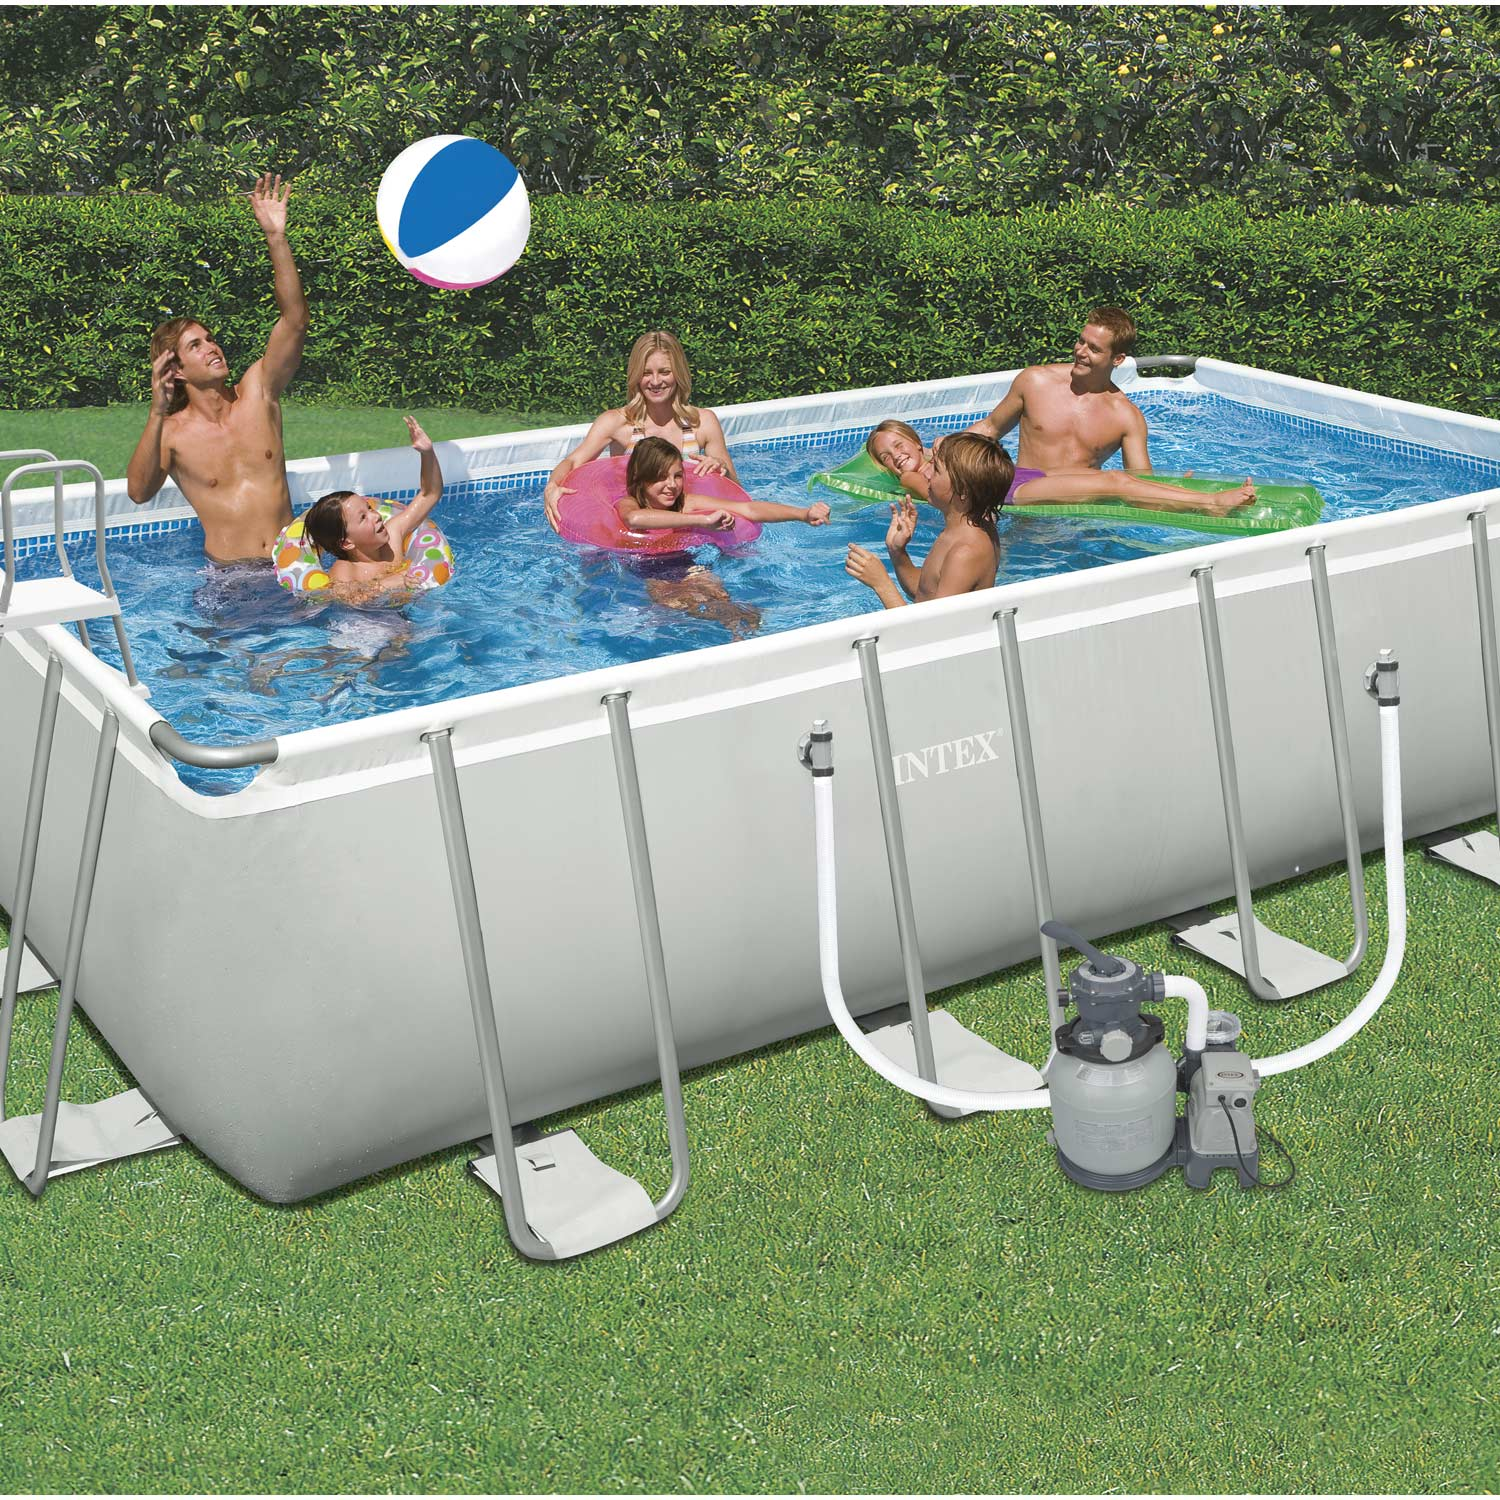 Piscine hors sol autoportante tubulaire intex l x l for Piscine hors sol 1m30